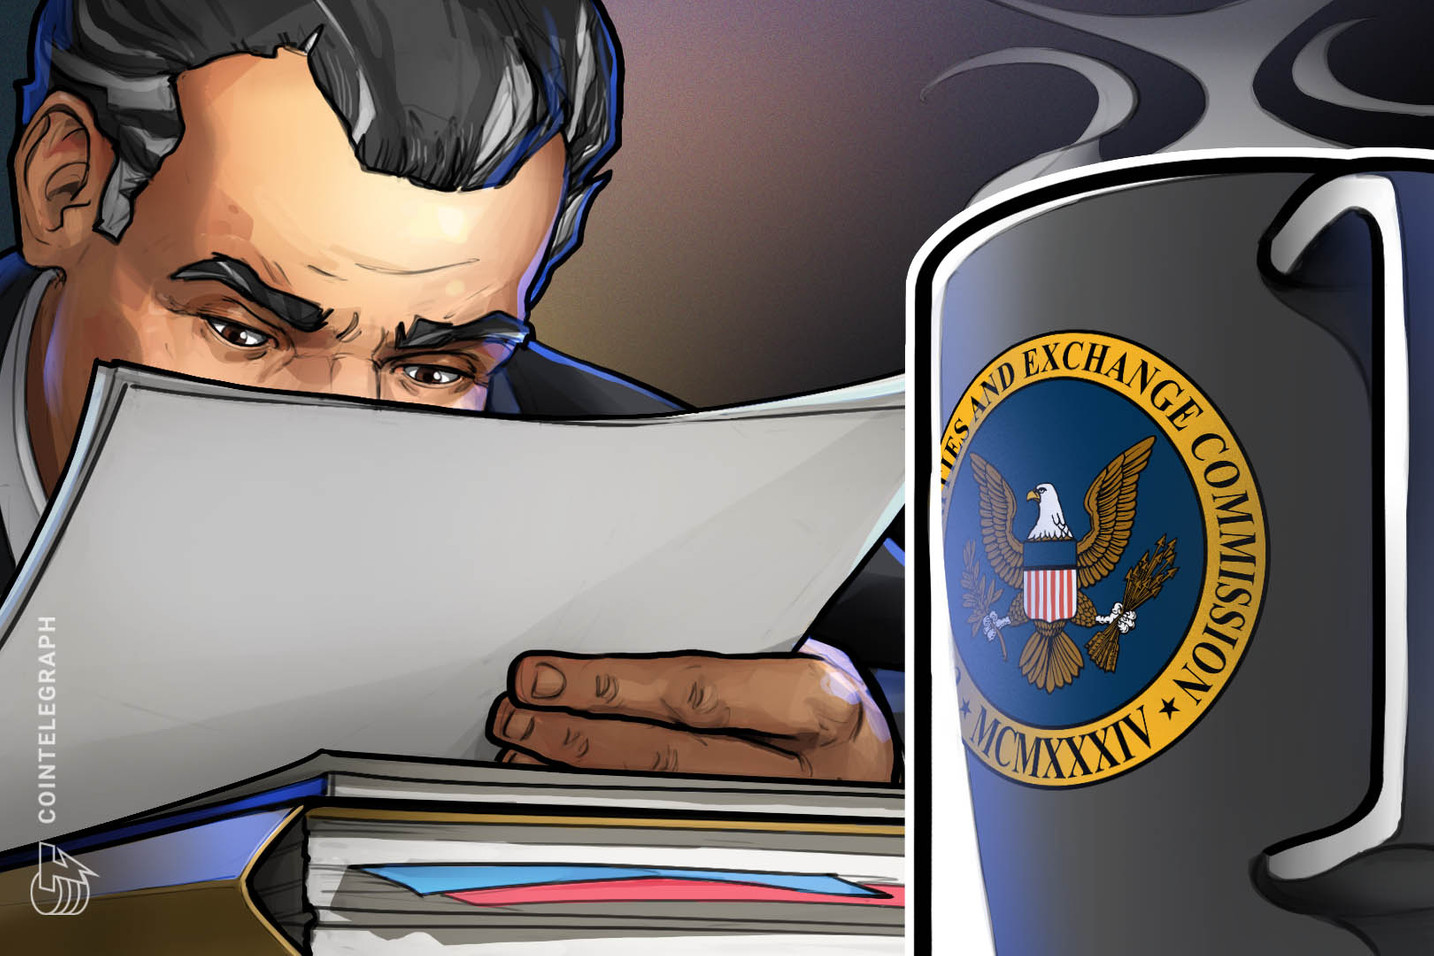 SEC Commissioner concerned about the US lagging behind global Bitcoin ETFs